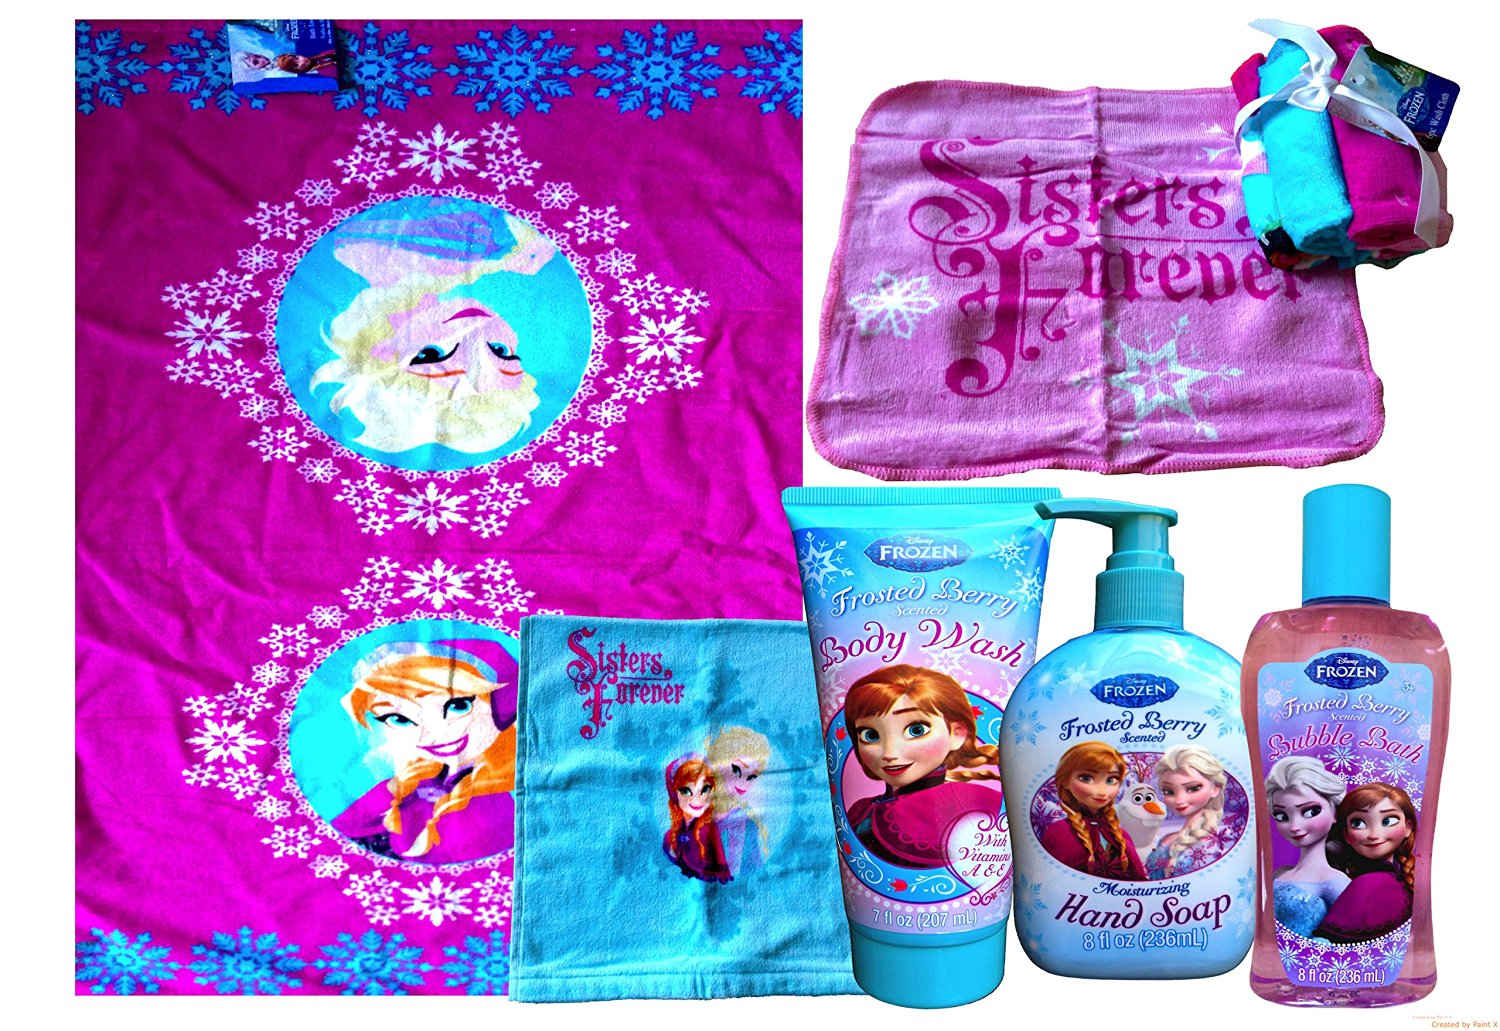 Disney Frozen Bath Towels Frosted Berry Disney Frozen Bathroom SET Disney Frozen Bubble Bath , Disney Frozen Hand Soap , Disney Frozen Conditioning Shampoo with 6 Pc Washcloth (PINK)